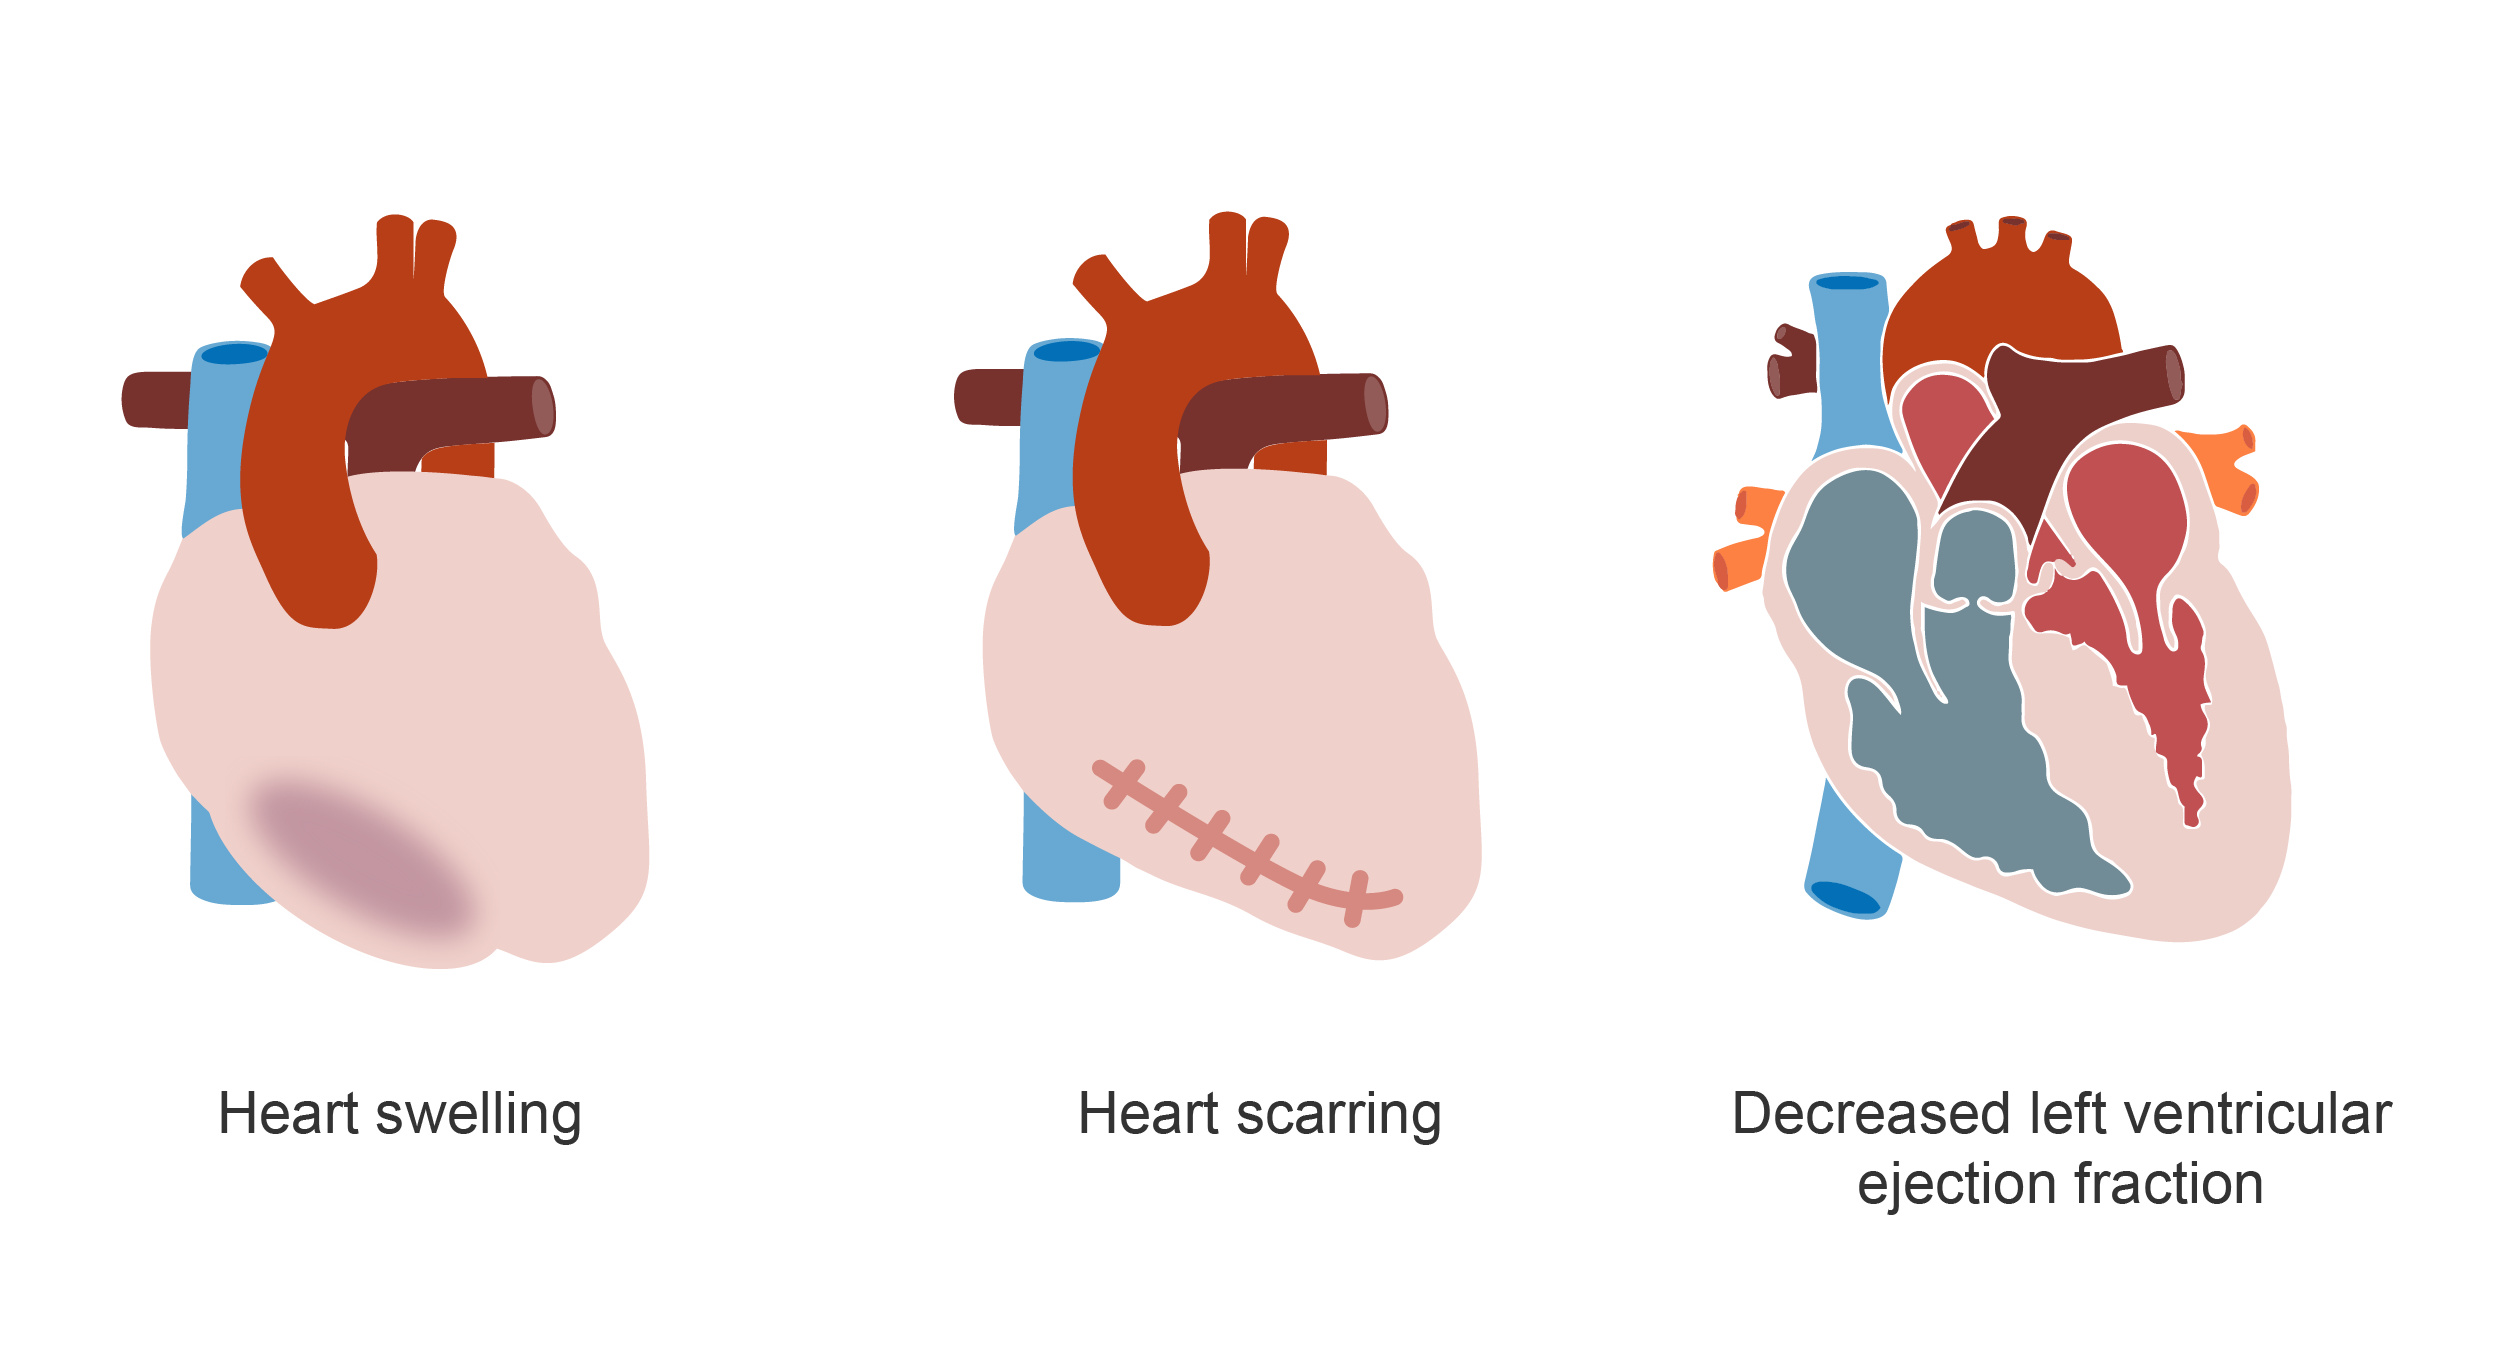 Three hearts showing swelling, scarring, and decreased left ventricular ejection fraction. Illustration.